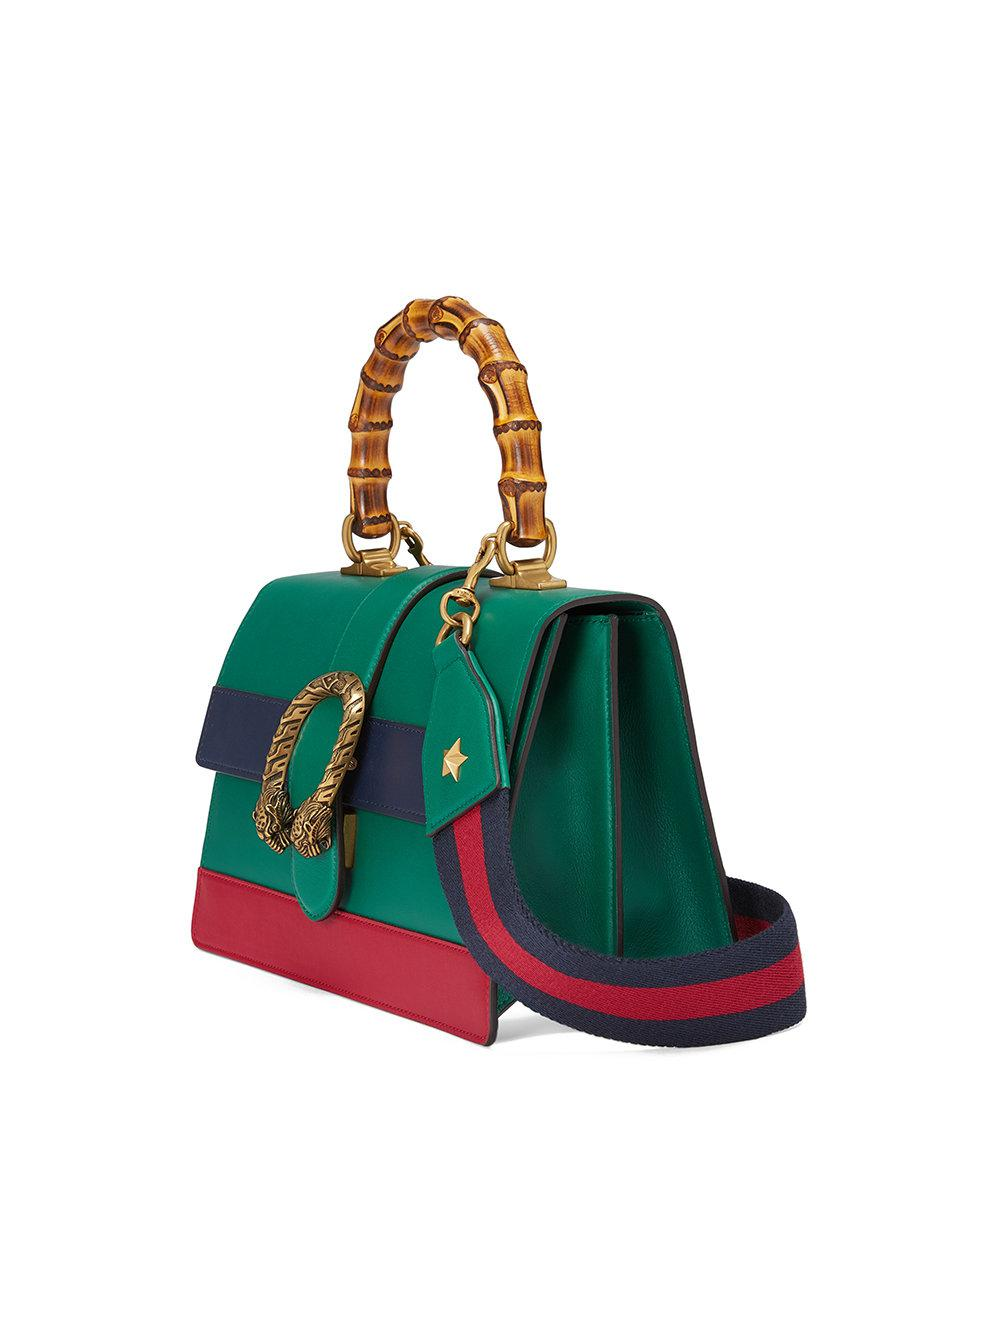 30c964916 Gallery. Previously sold at: Farfetch · Women's Gucci Dionysus Bags